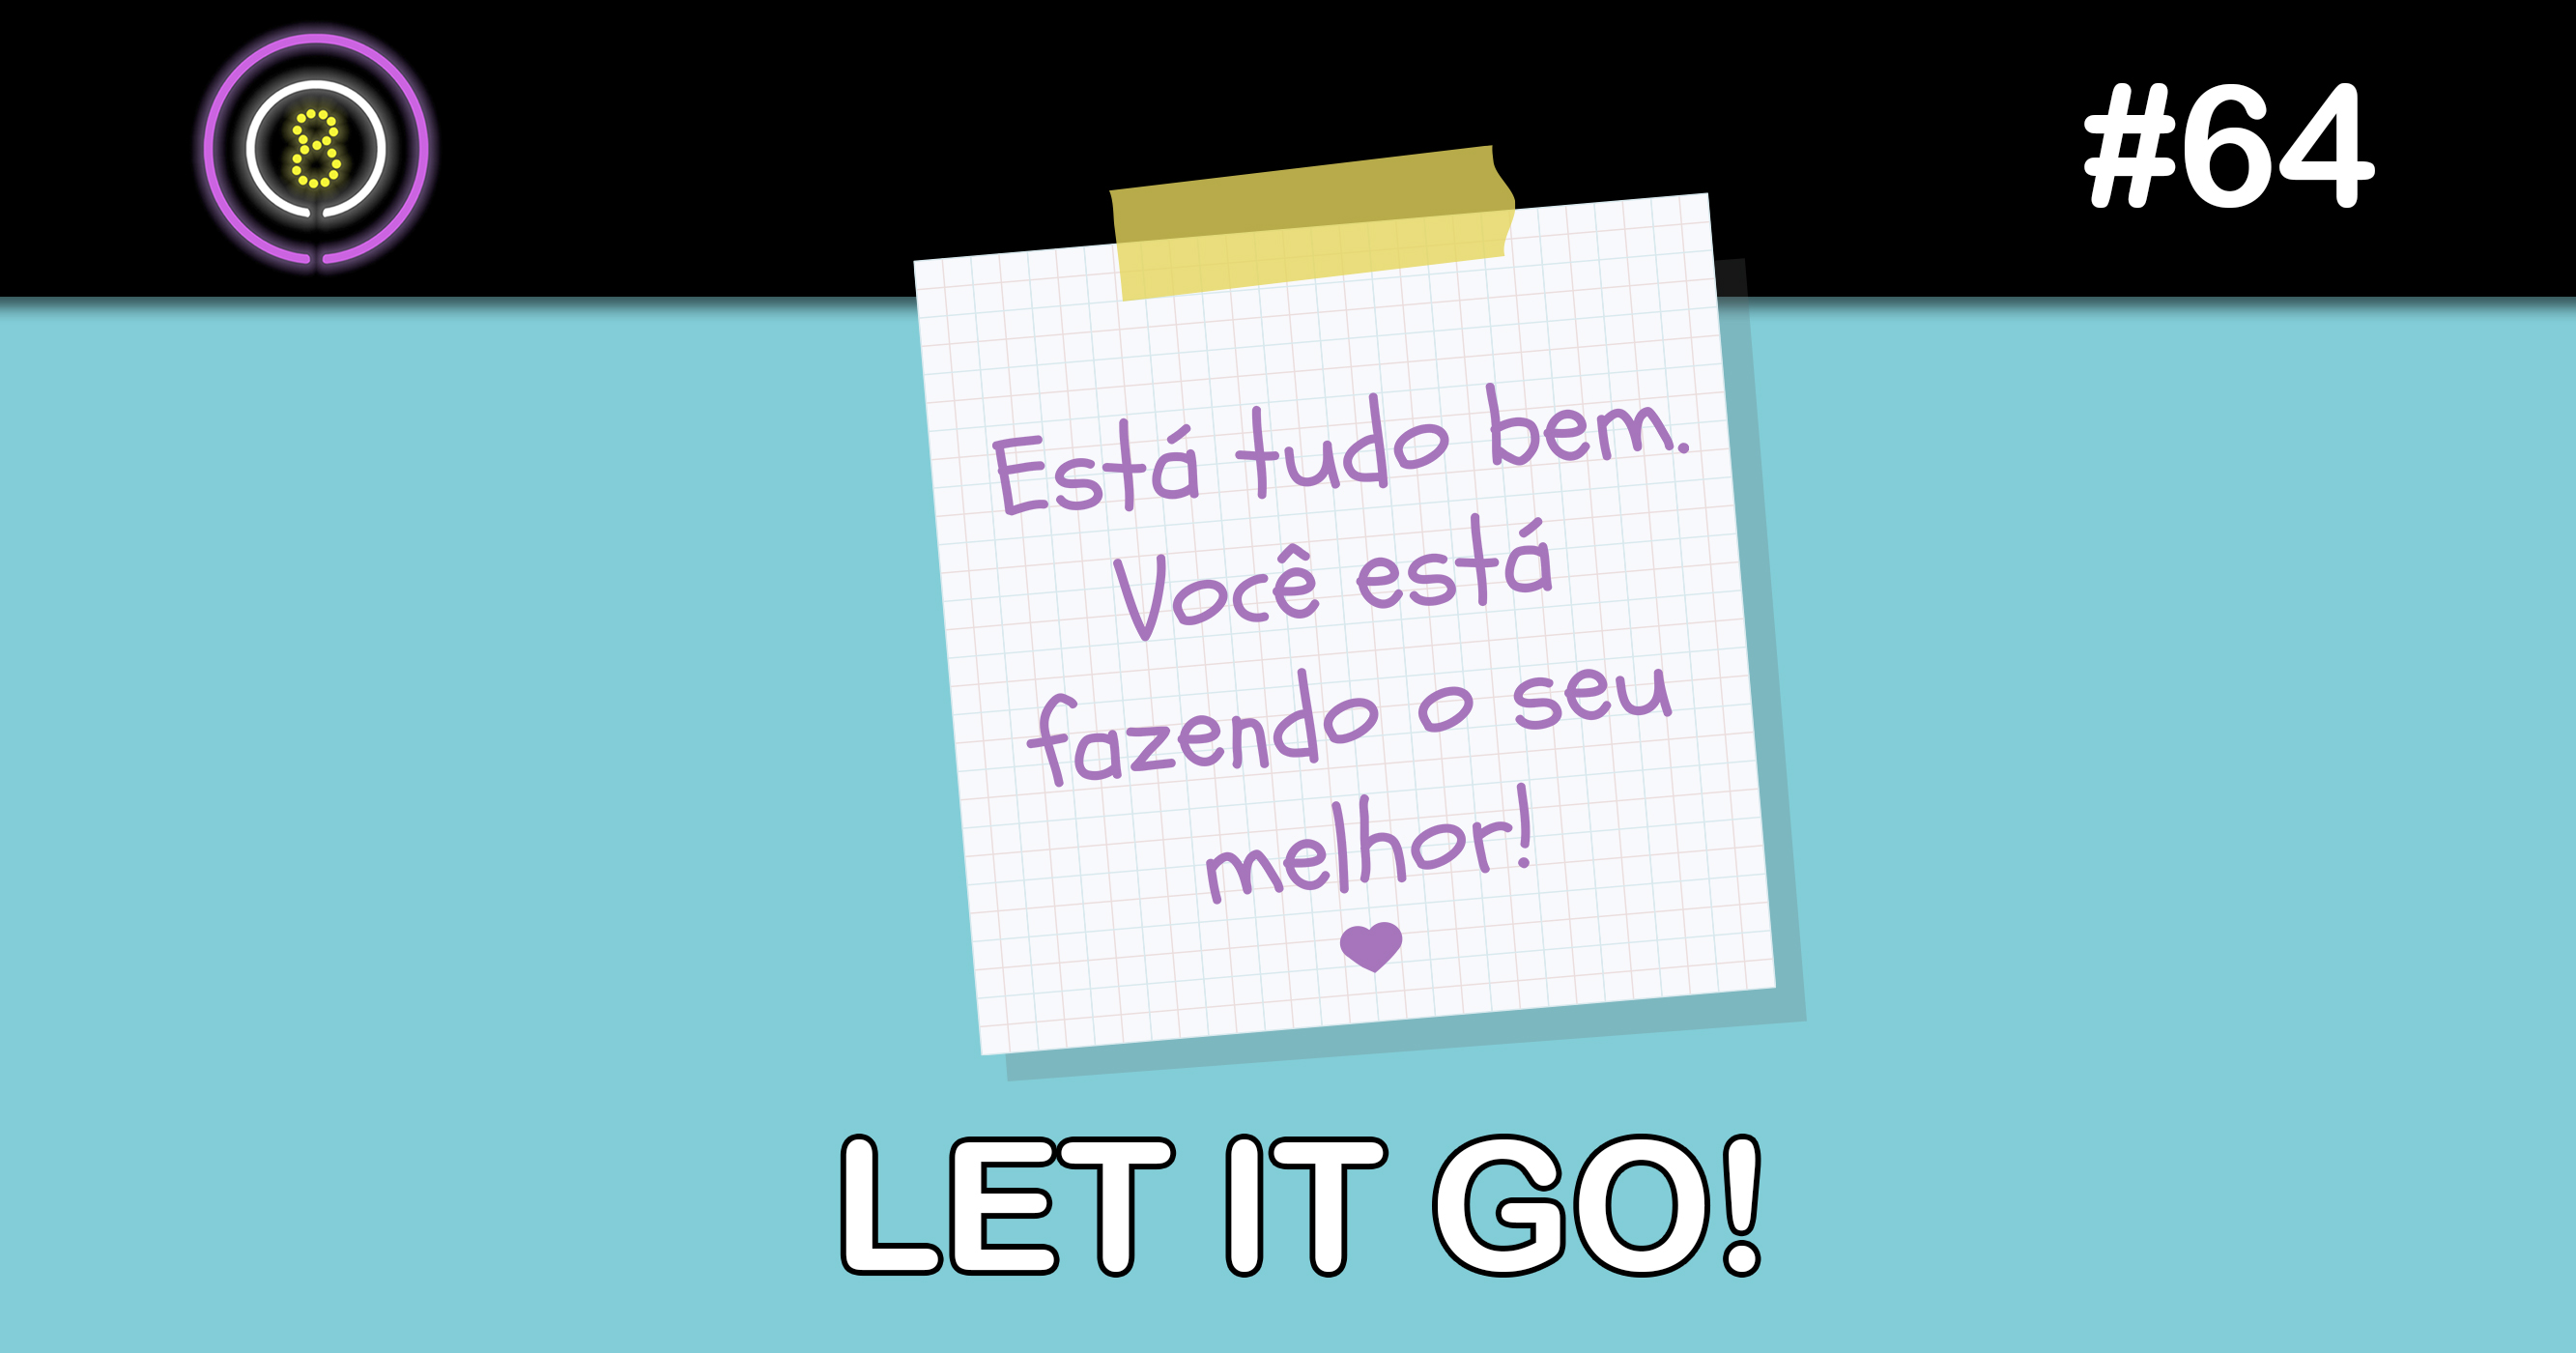 Let it Go! – Podcast Sinuca de Bicos 064